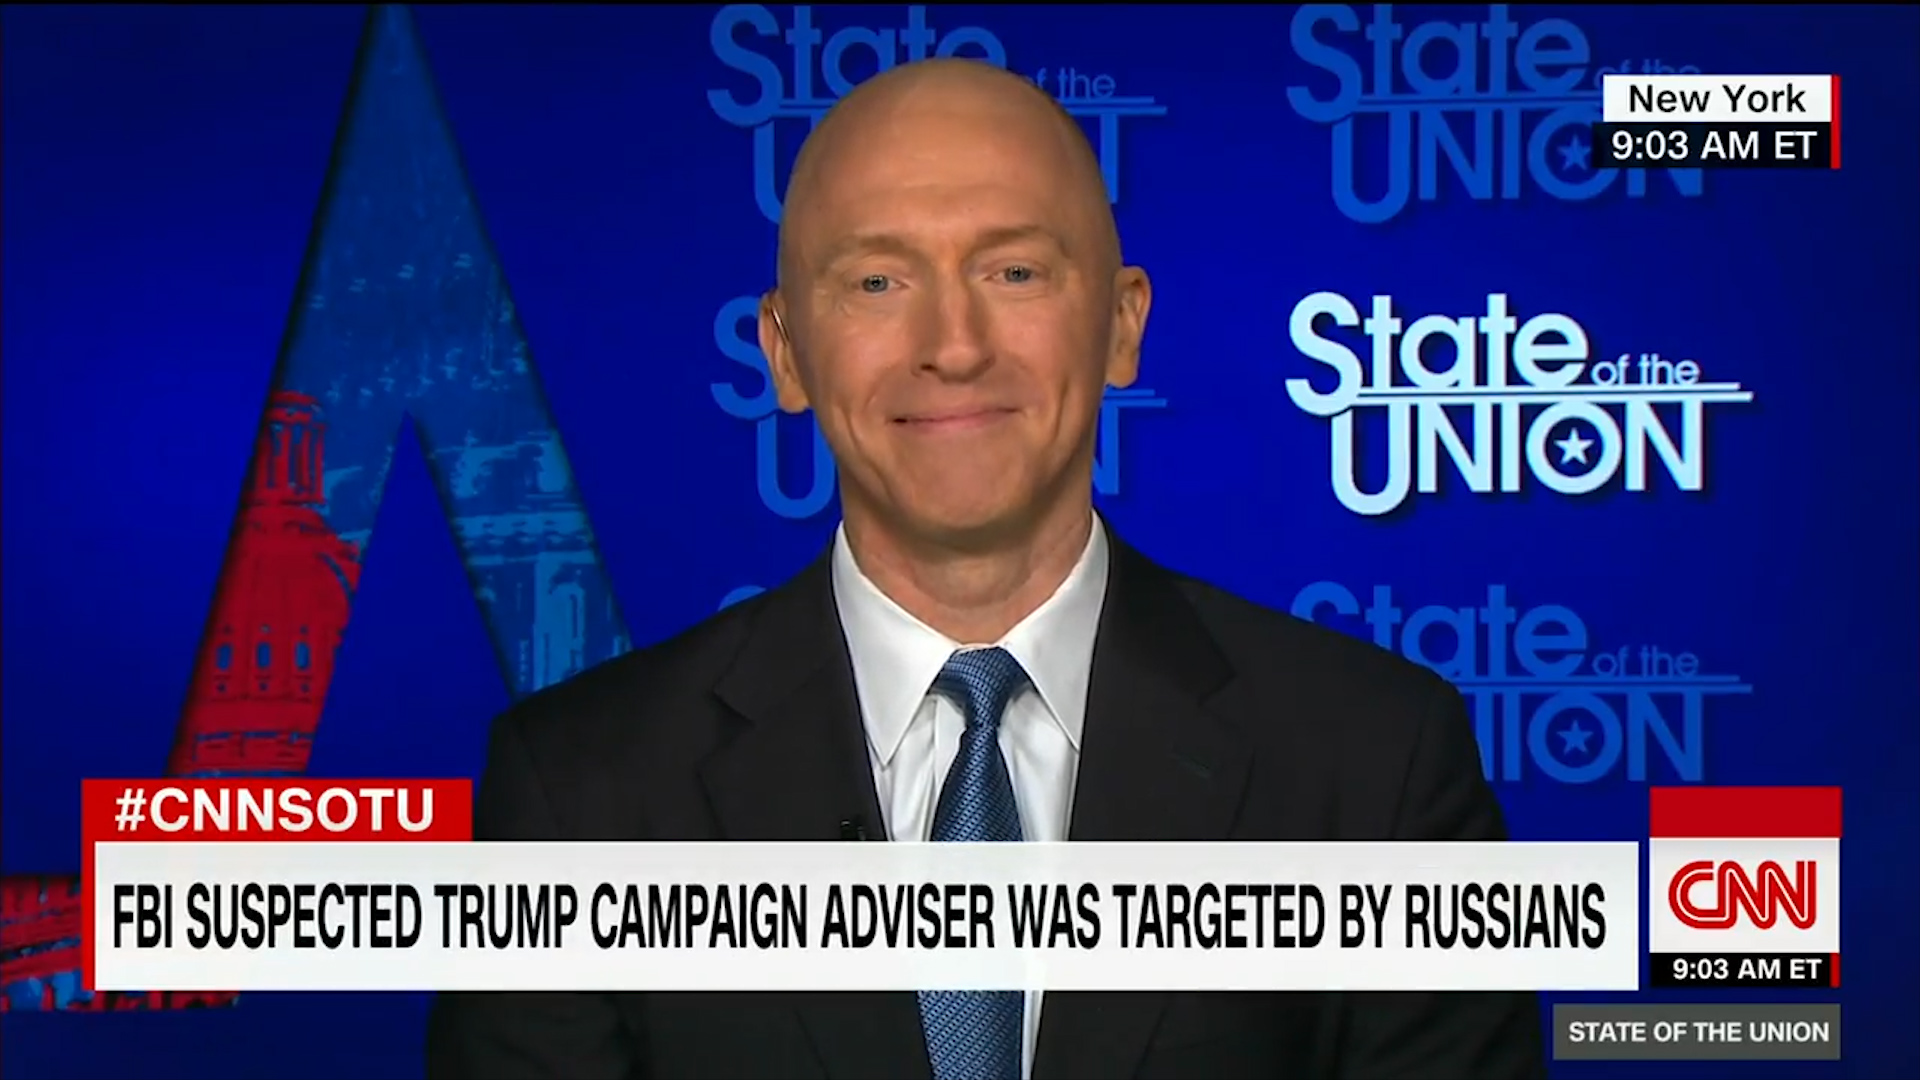 Former Trump campaign adviser Carter Page denies being Russian 'agent'